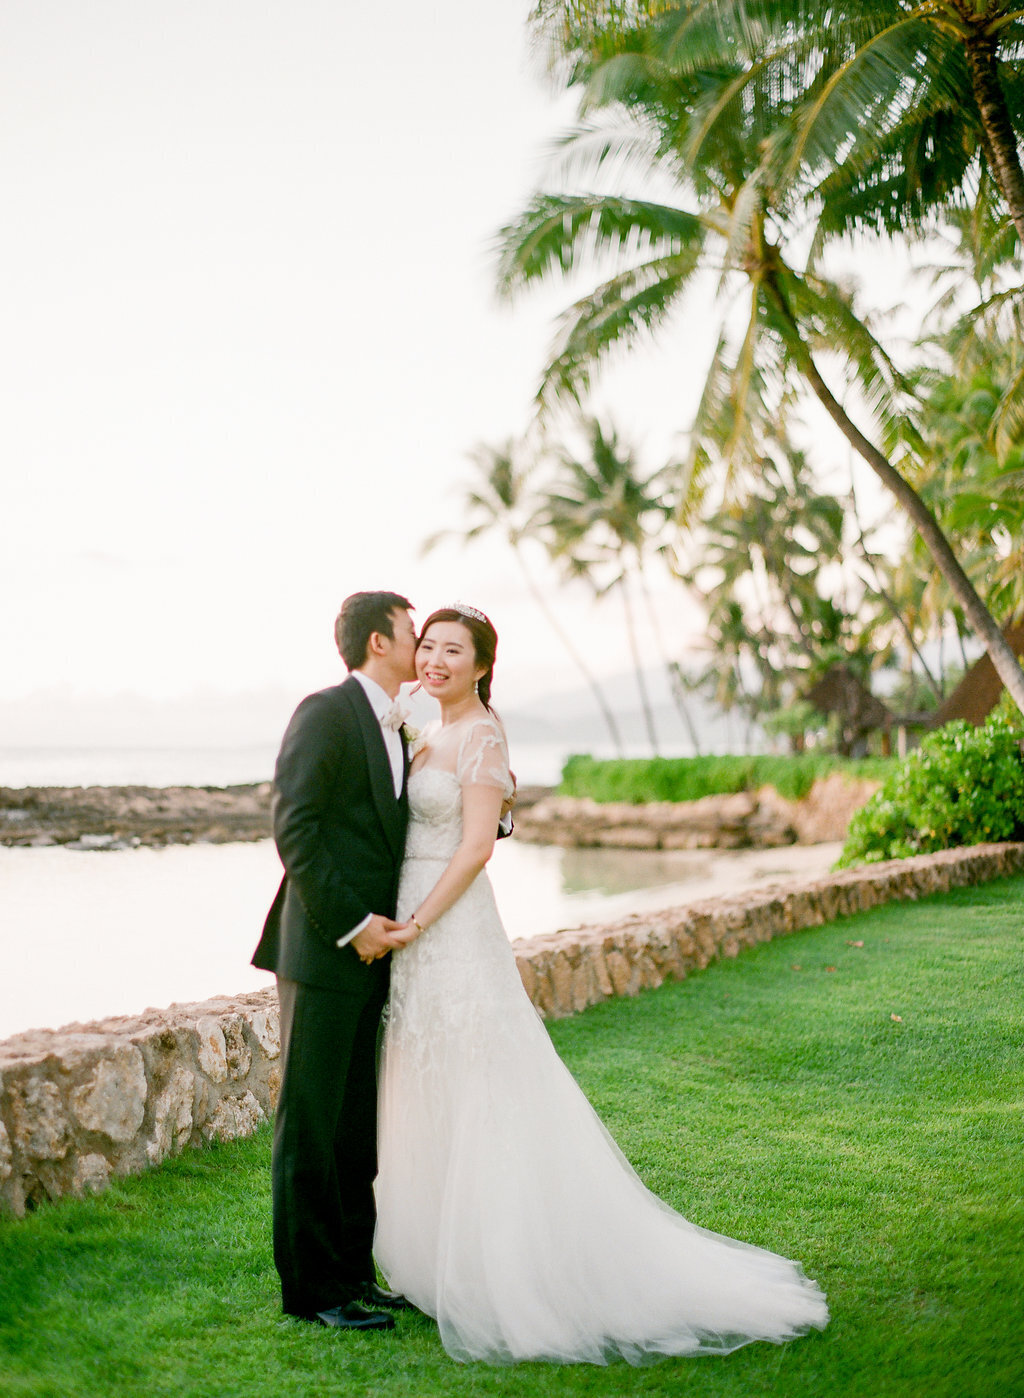 Finishing Touch Hawaii Wedding Planning Design Planner Designer Corporate Social Non Profit Sandra Williams28